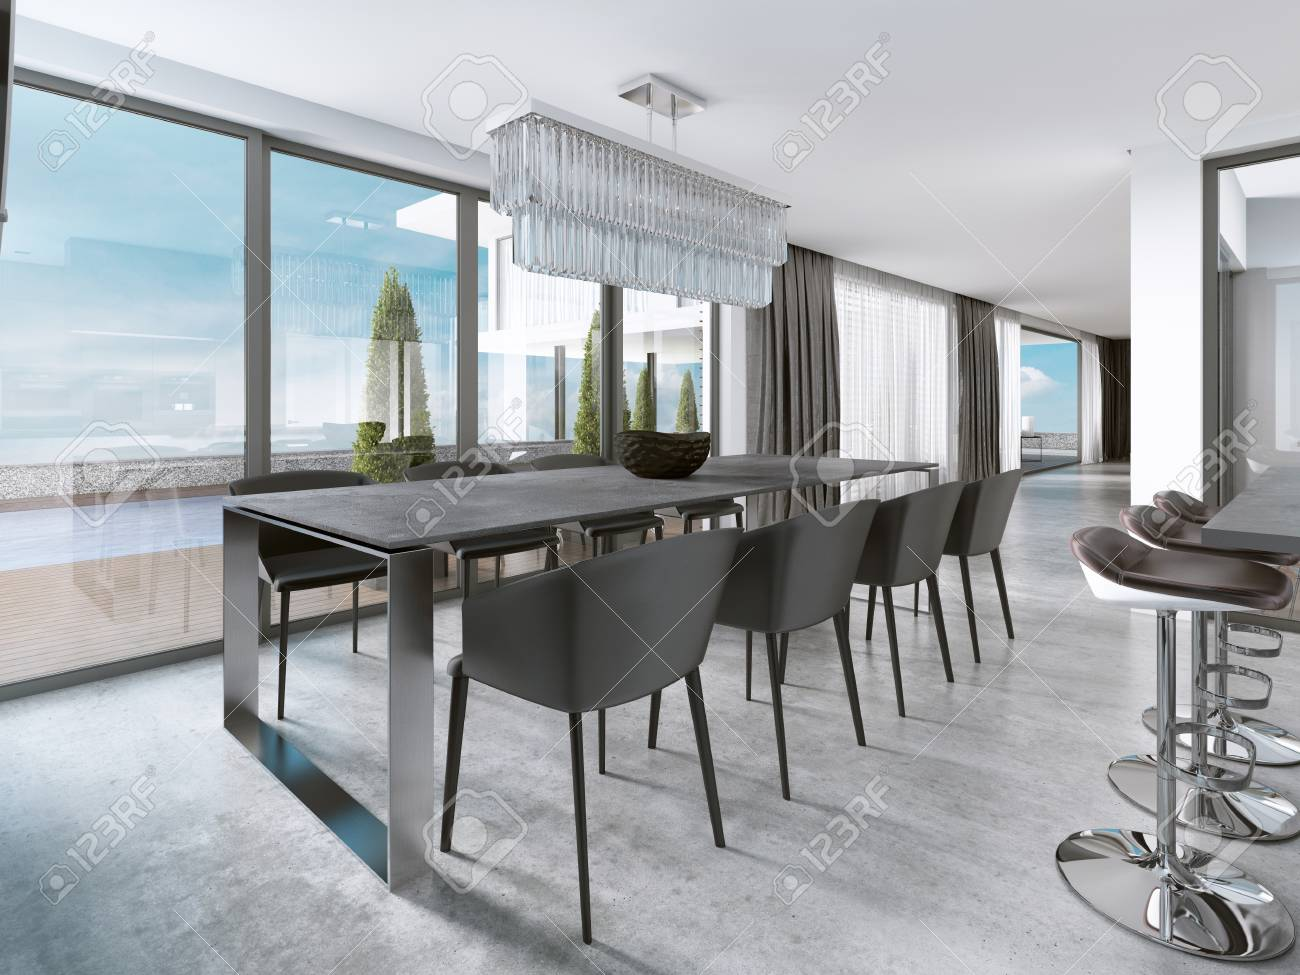 Large Modern Dining Table In Contemporary Kitchen 3d Rendering